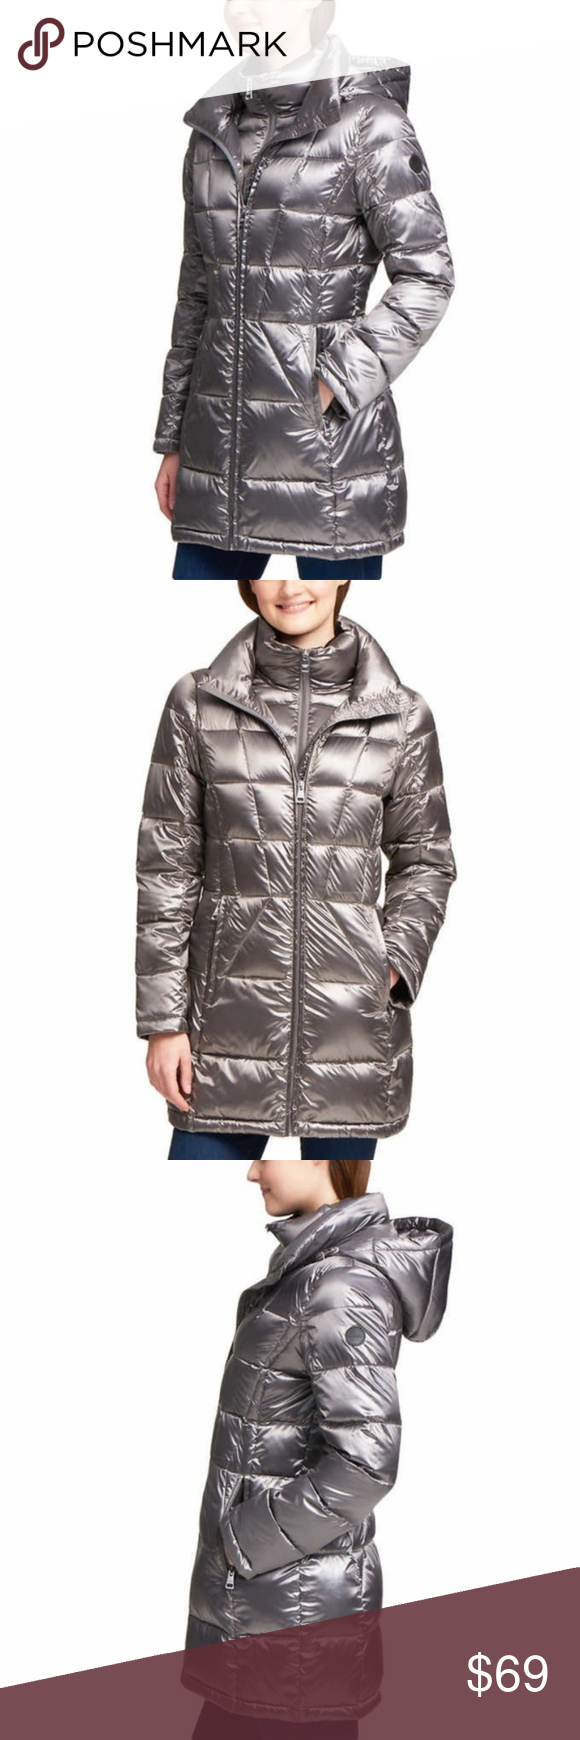 2f8de5295cca3 Andrew Marc Ladies' Packable Down Jacket, NWOT Andrew Marc Women's Packable  Premium Down Long Puffer Jacket SKU: #P120-021 * New Without Tags Color:  Gray ...